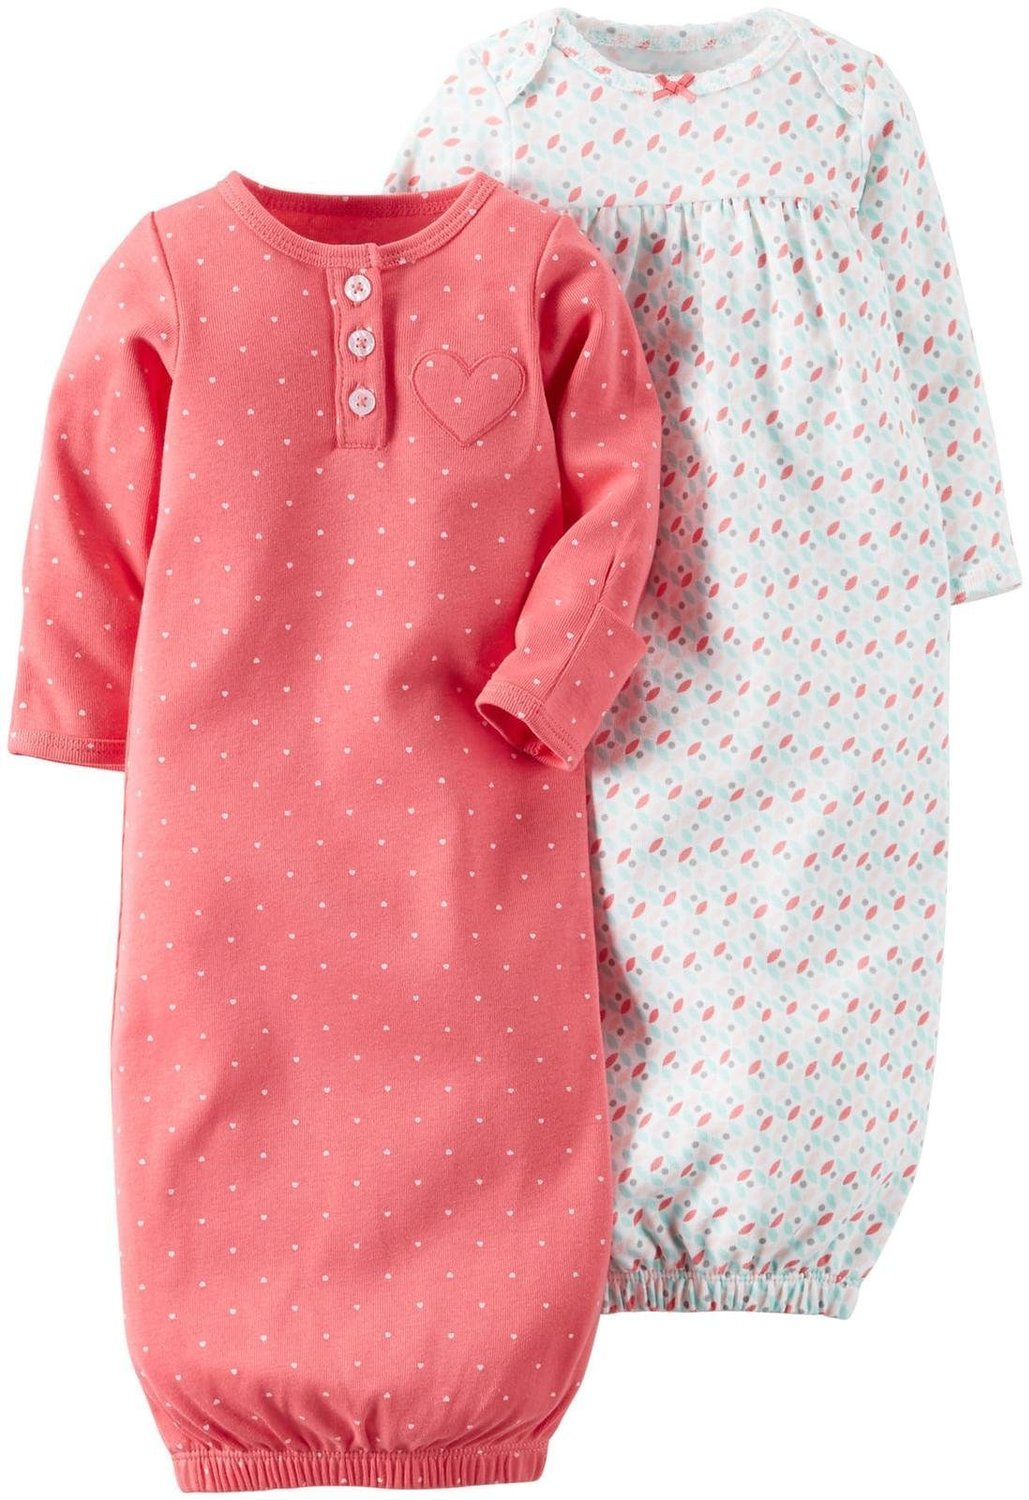 Cheap Best Baby Gowns, find Best Baby Gowns deals on line at Alibaba.com